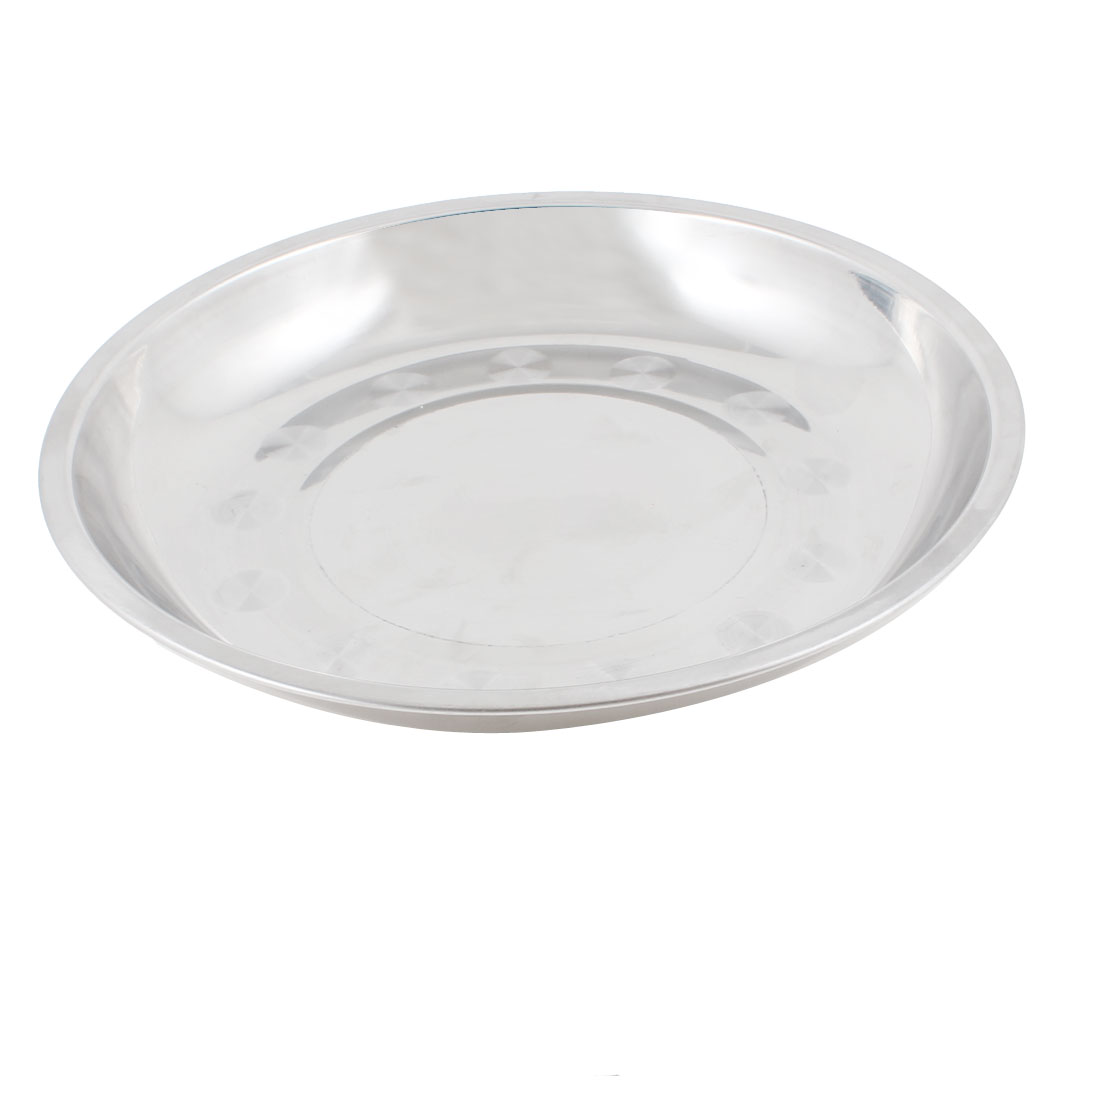 "Kitchen 9.3"" Dia Stainless Steel Dinner Plate Food Container Silver Tone"